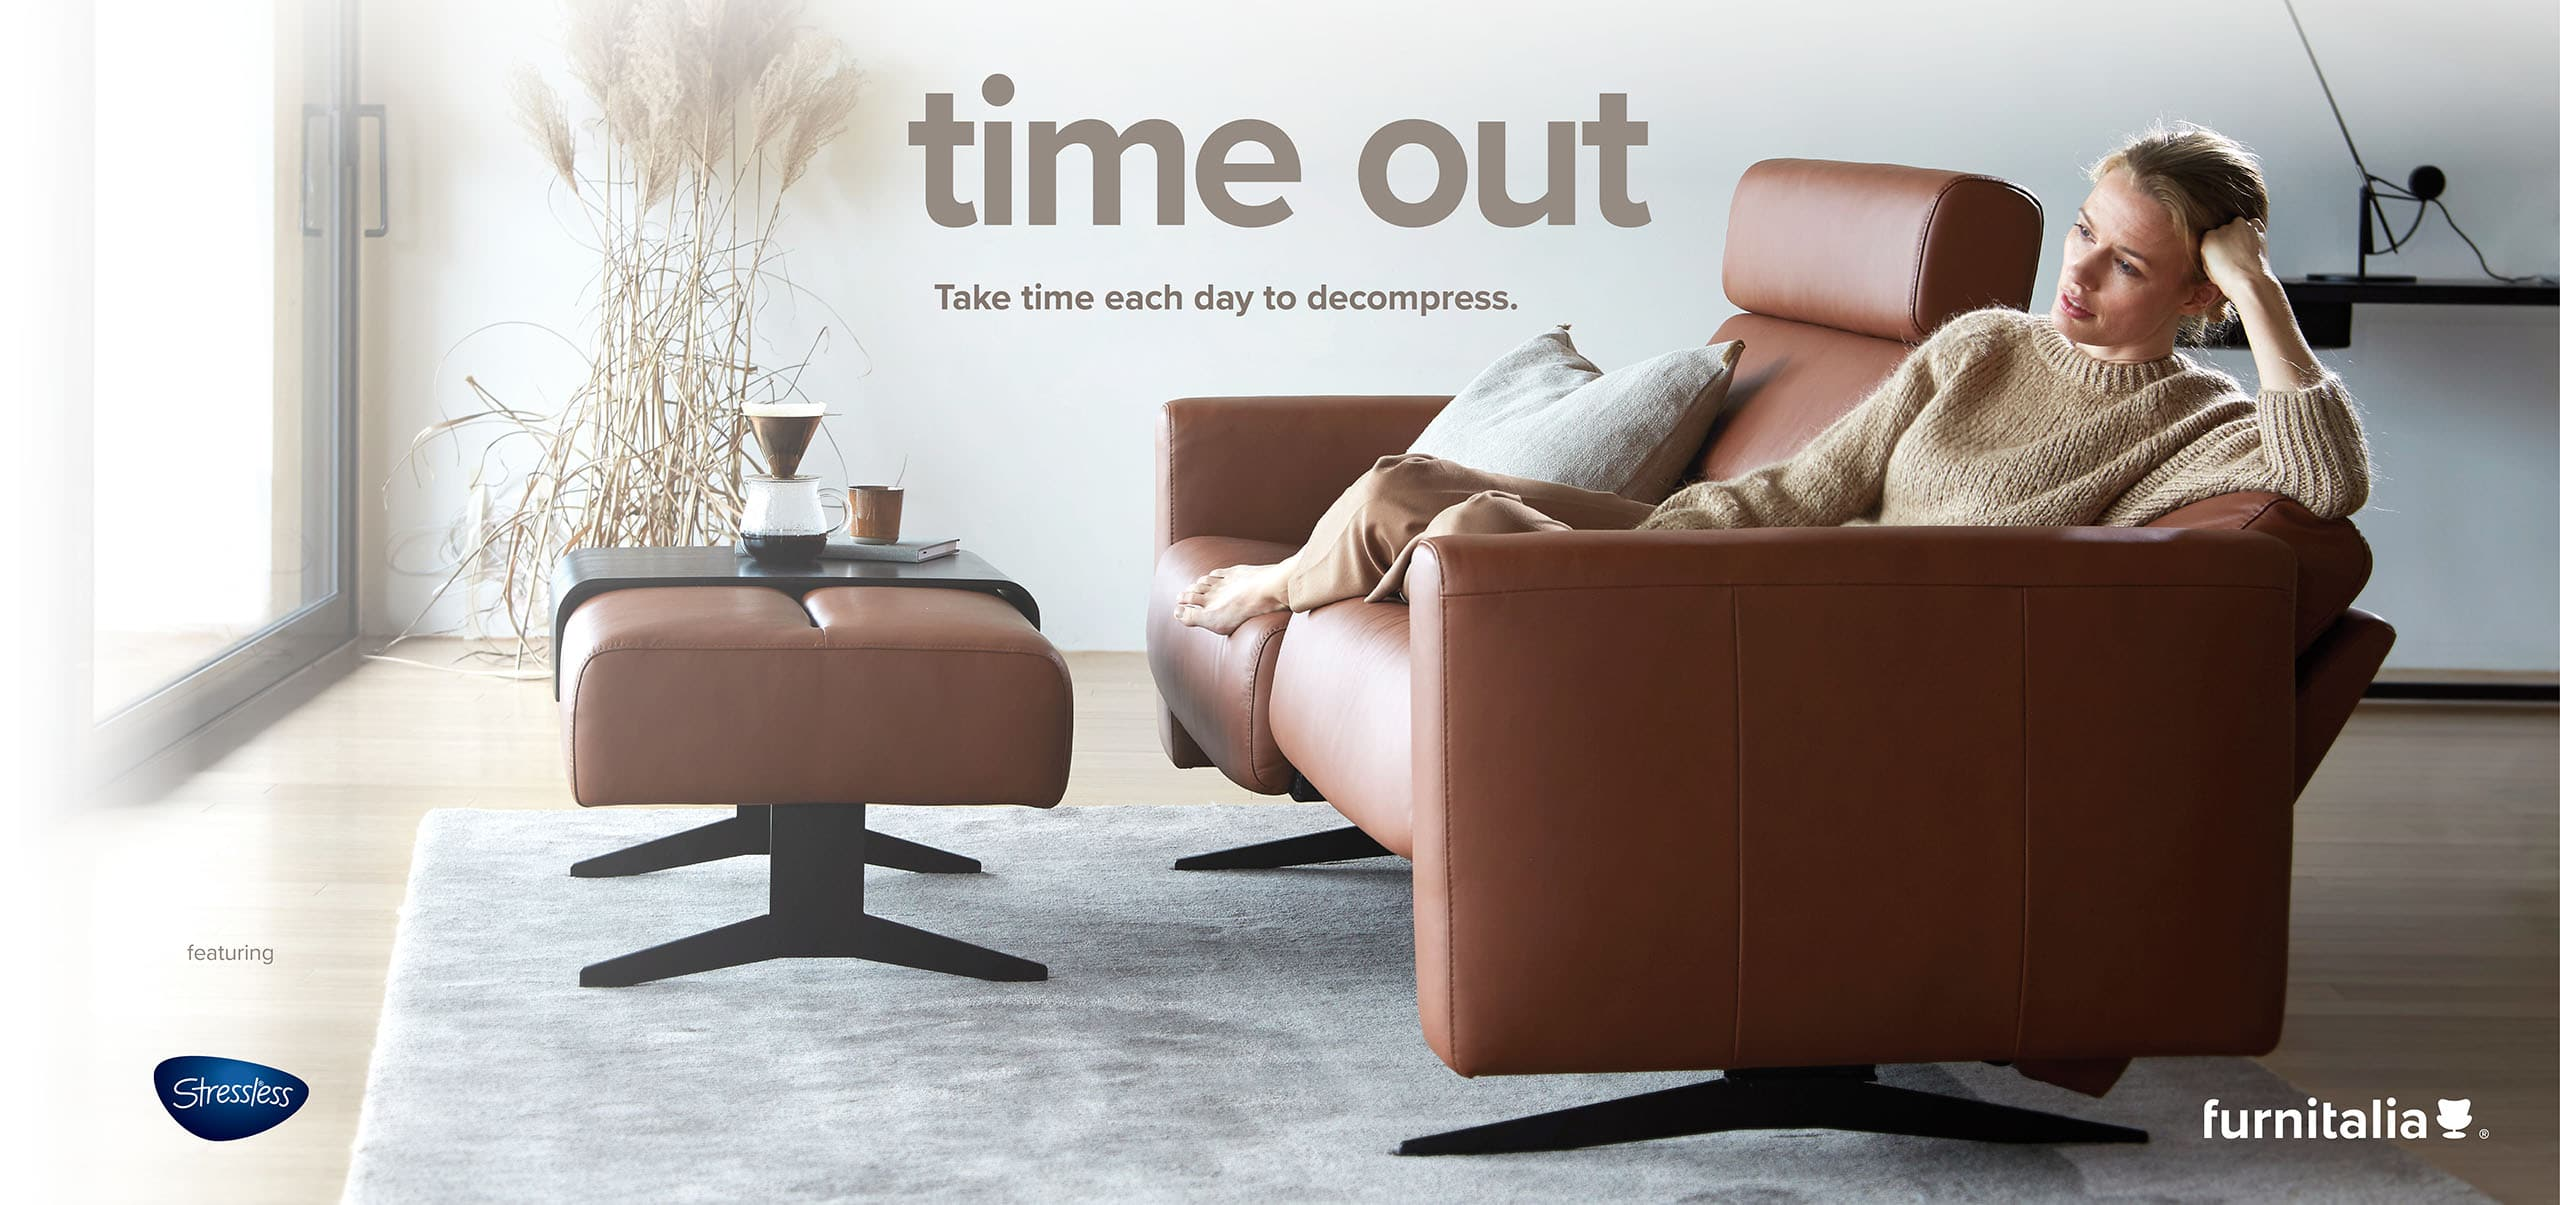 Enjoy modern contemporary home furniture like this sofa and ottoman from Stressless®.